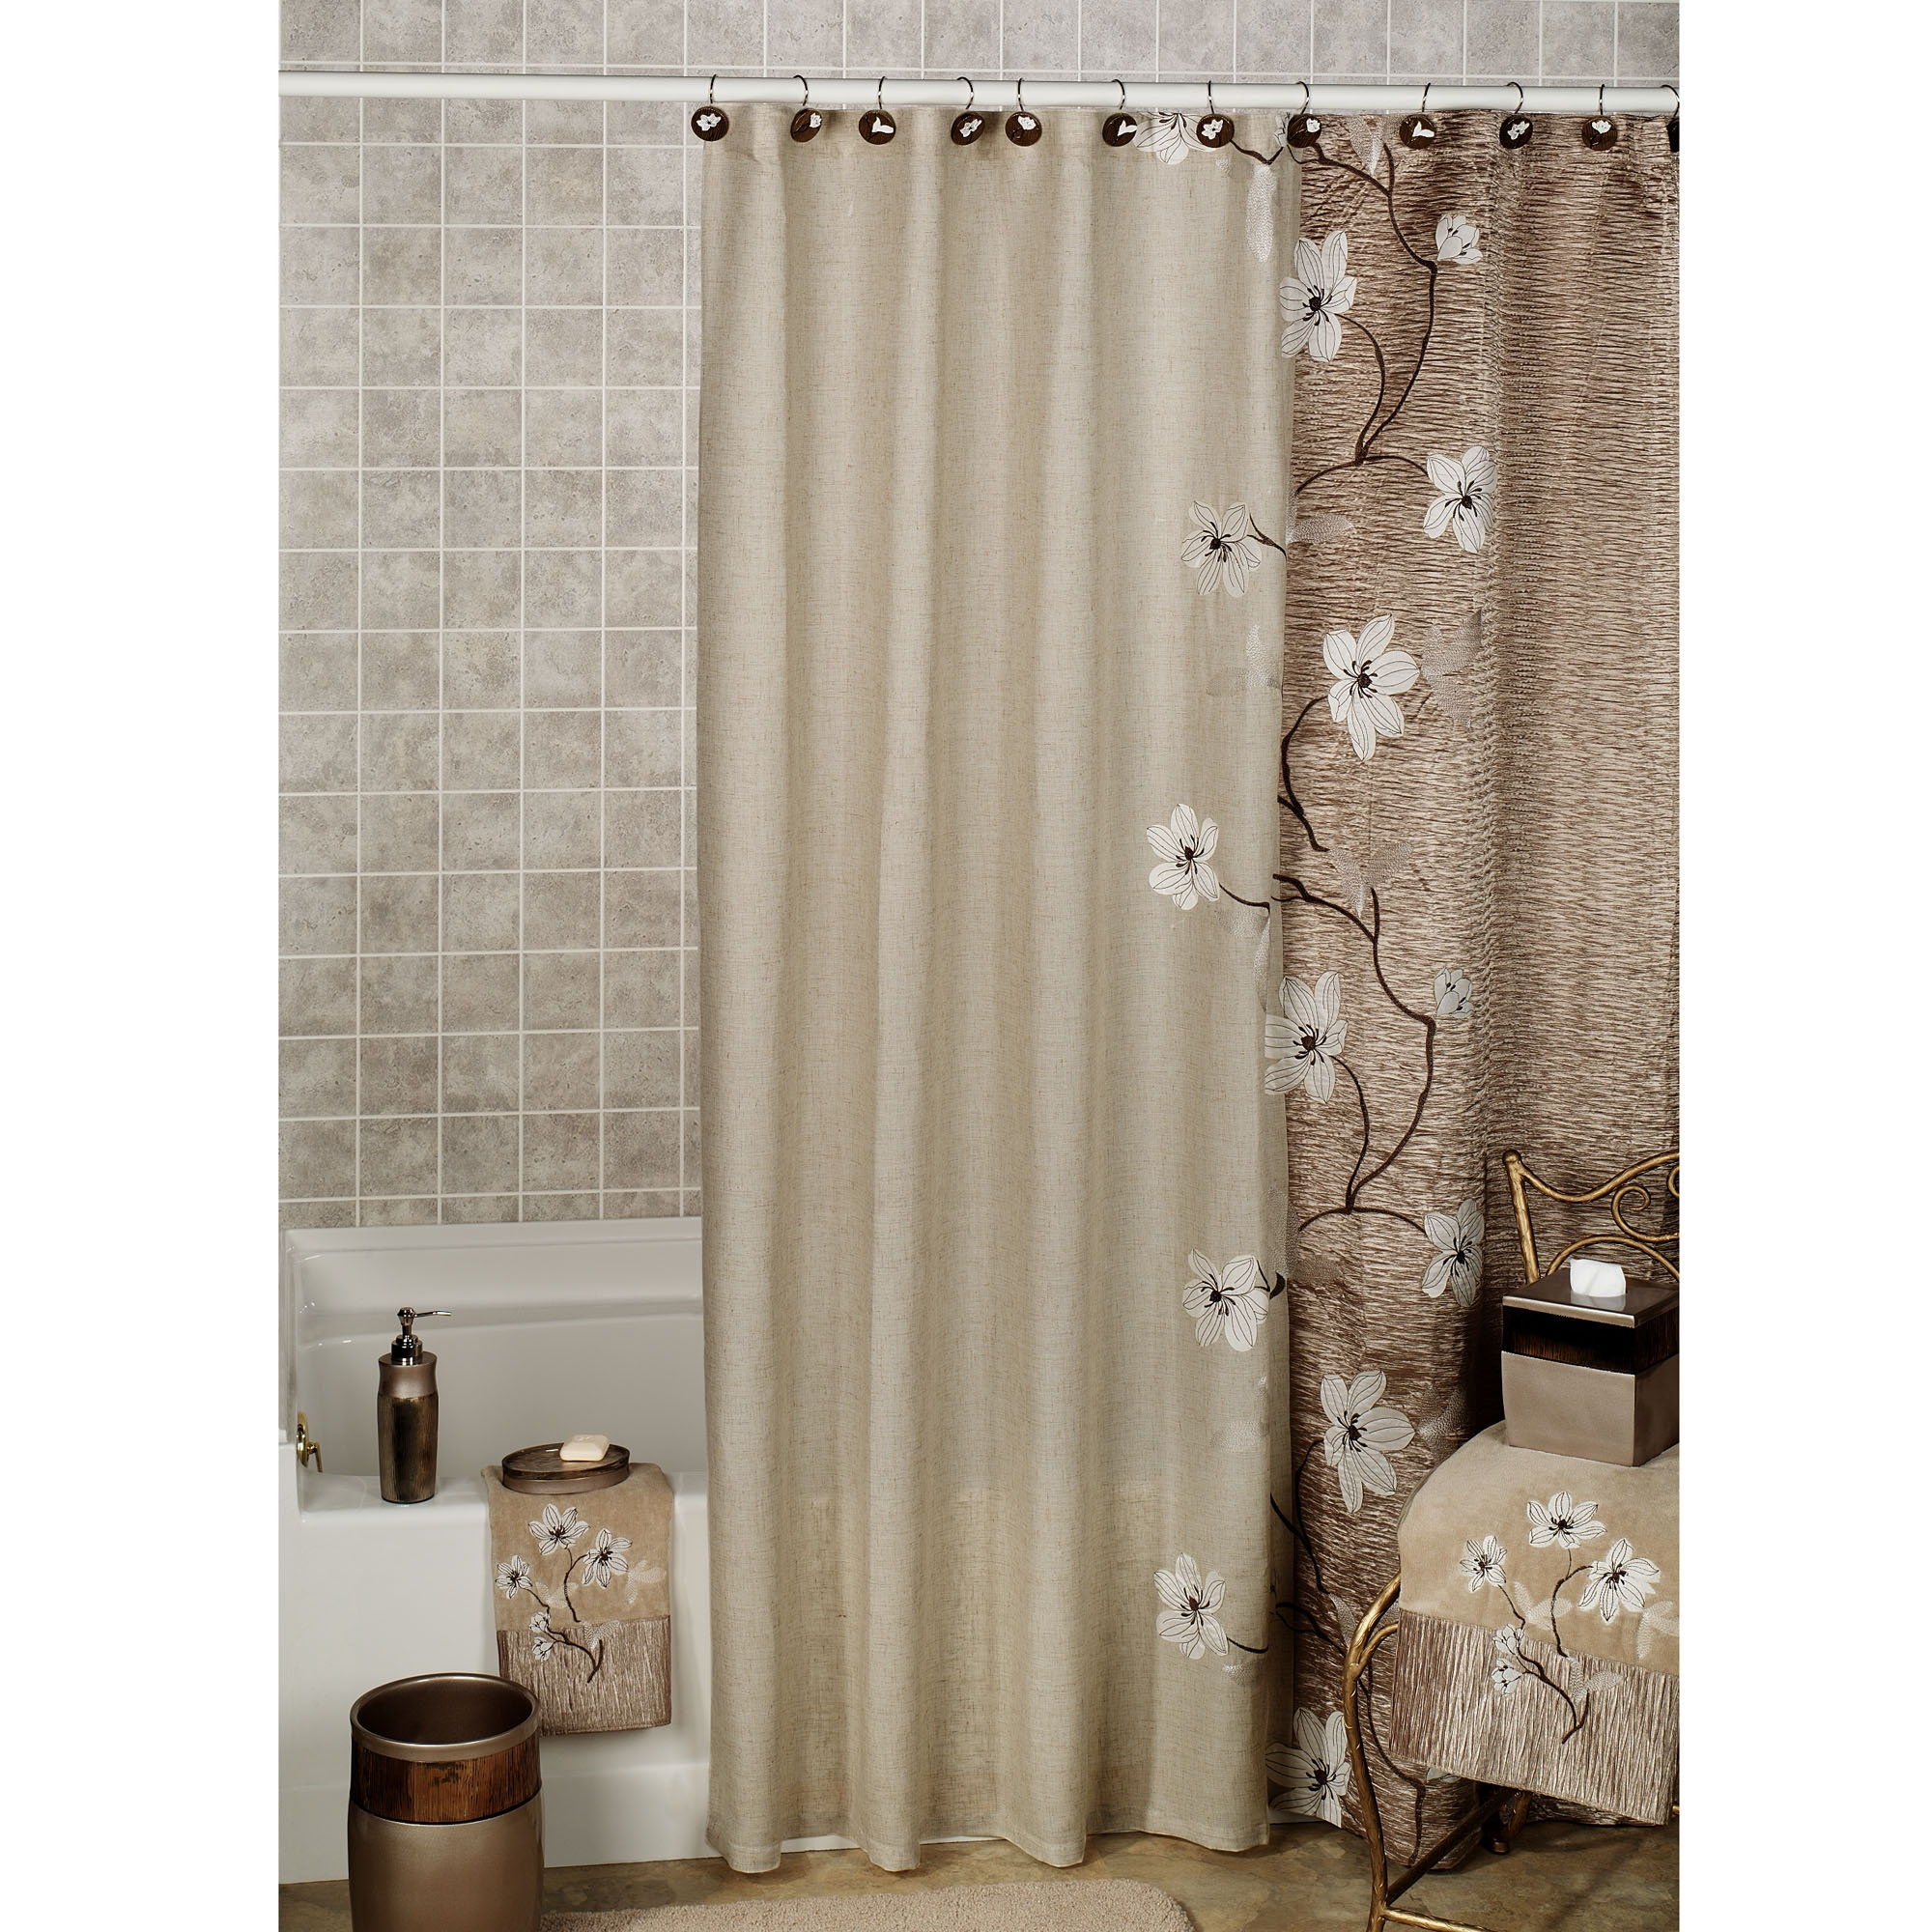 Shower Curtains With Matching Rugs And Towels Shower Curtains Ideas